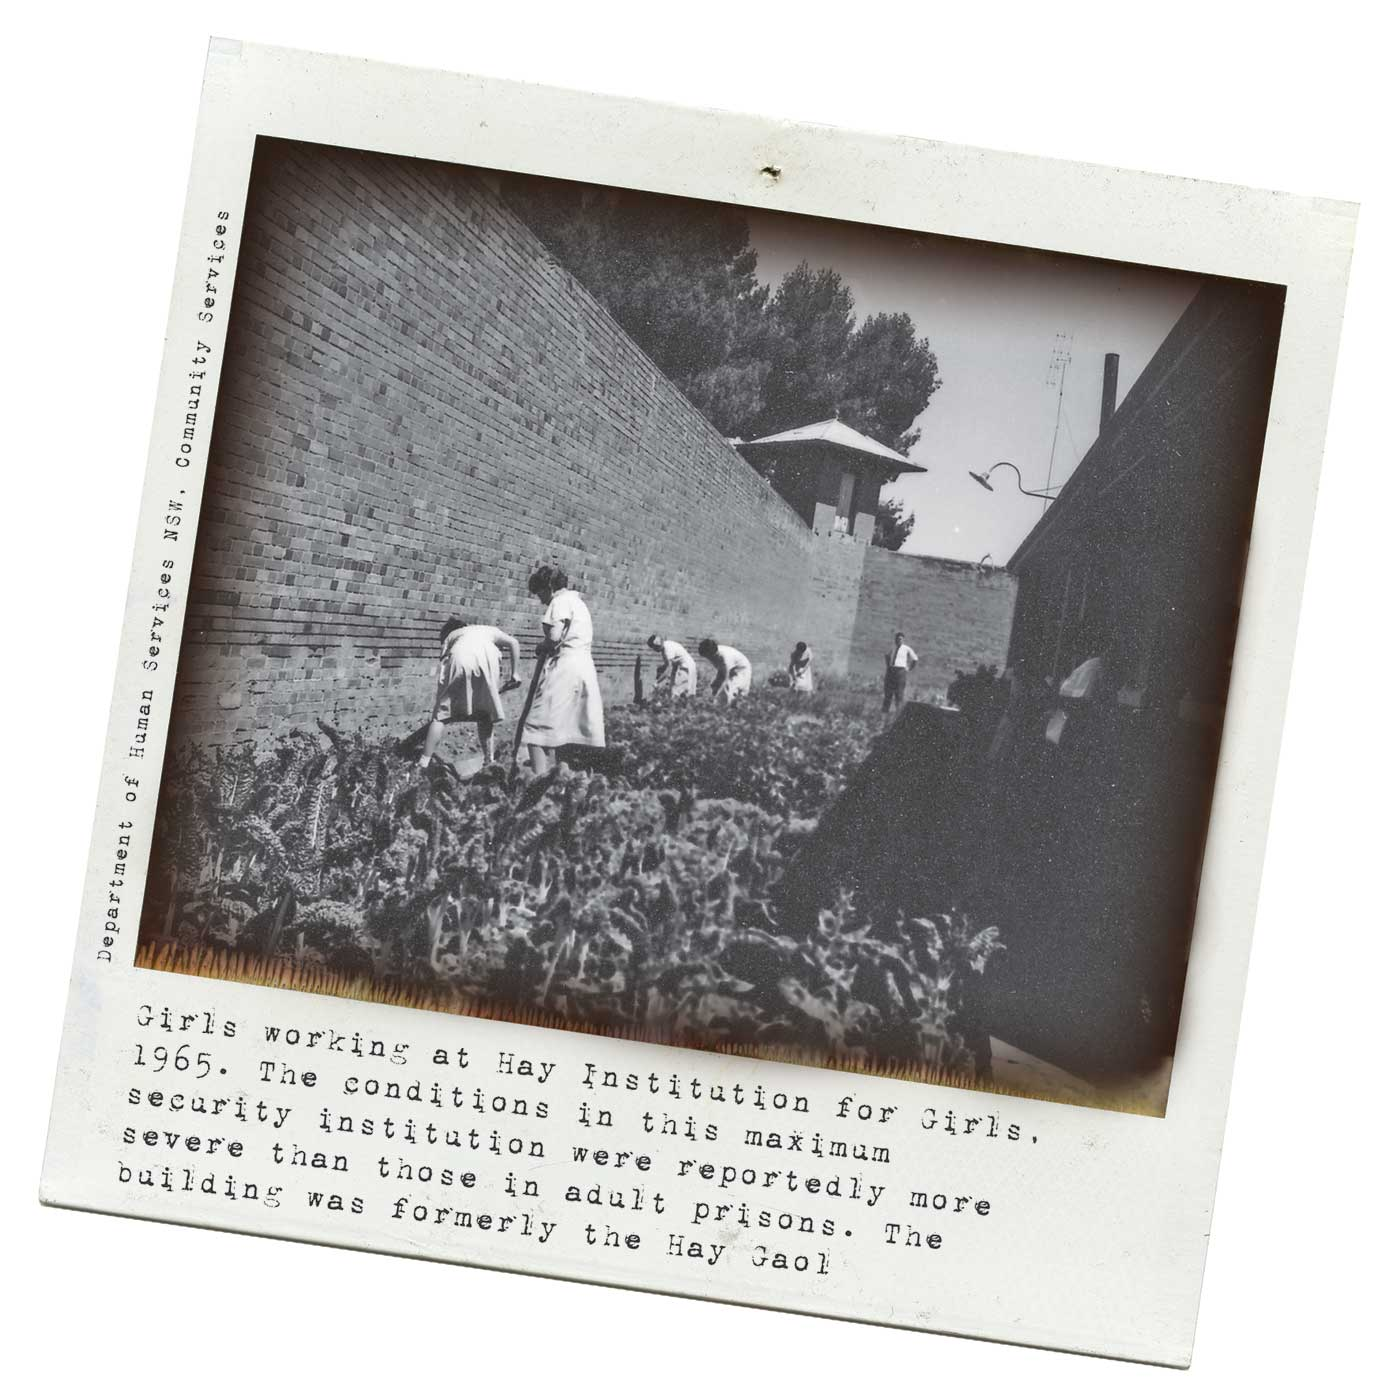 Black and white Polaroid image showing a group of teenage girls at work among a large vegetable patch inside a high bricked wall. A man stands with his hands on hips at the far end. Typed text under the photo reads: 'Girls working at Hay Institution for Girls, 1965. The conditions in this maximum security institution were reportedly more severe than those in adult prisons. The building was formerly the Hay Gaol'. 'Department of Human Services, NSW, Community Services is printed at left. - click to view larger image